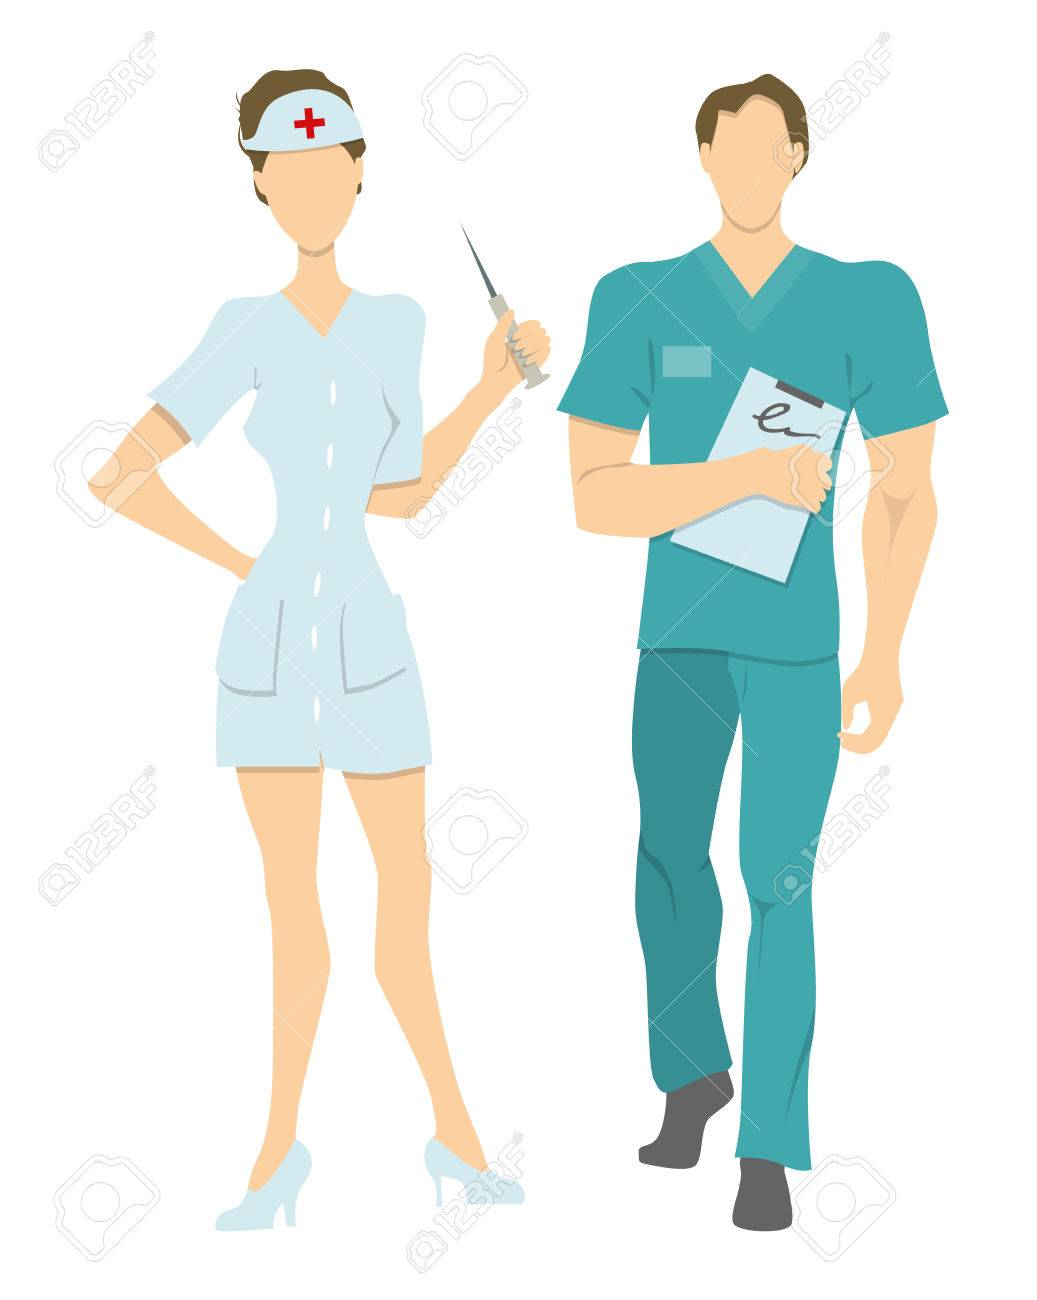 Isolated Professional Nurses Male And Female Nurses In Uniform Royalty Free Cliparts Vectors And Stock Illustration Image 66039483